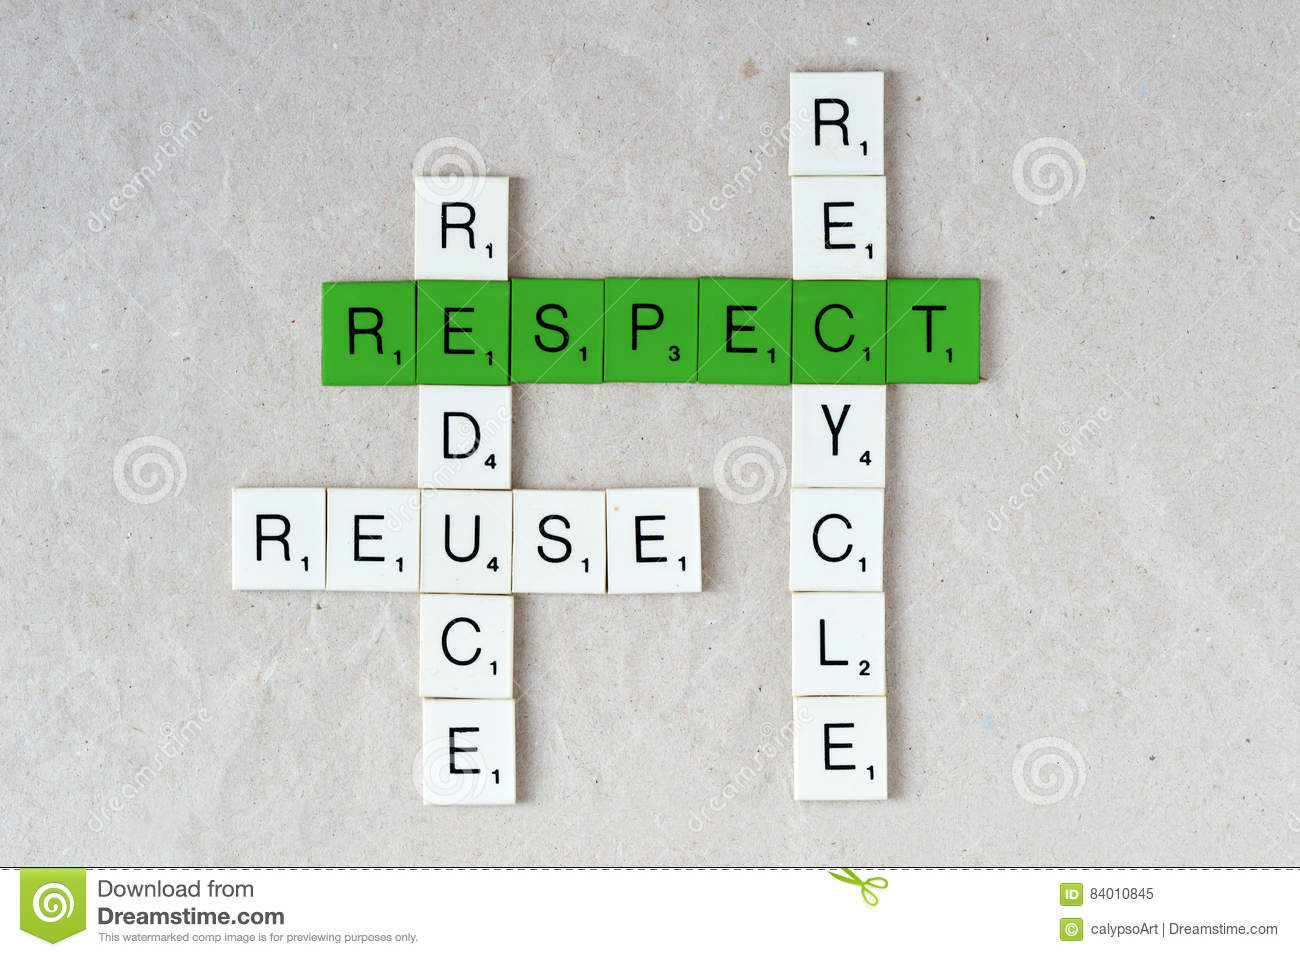 Ecology and sustainability: recycle, reduce, reuse and respect